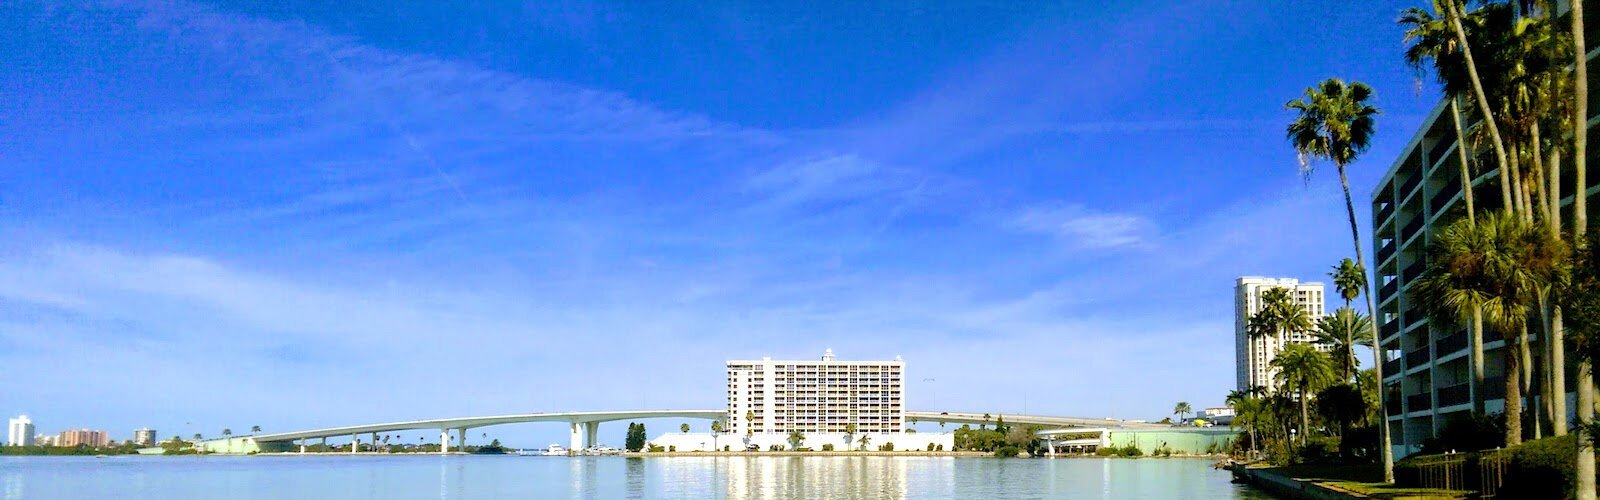 Clearwater has been named a Beacon City for its efforts in protecting the Intracoastal Waterway, its popular beaches, and the greater Gulf Coast.